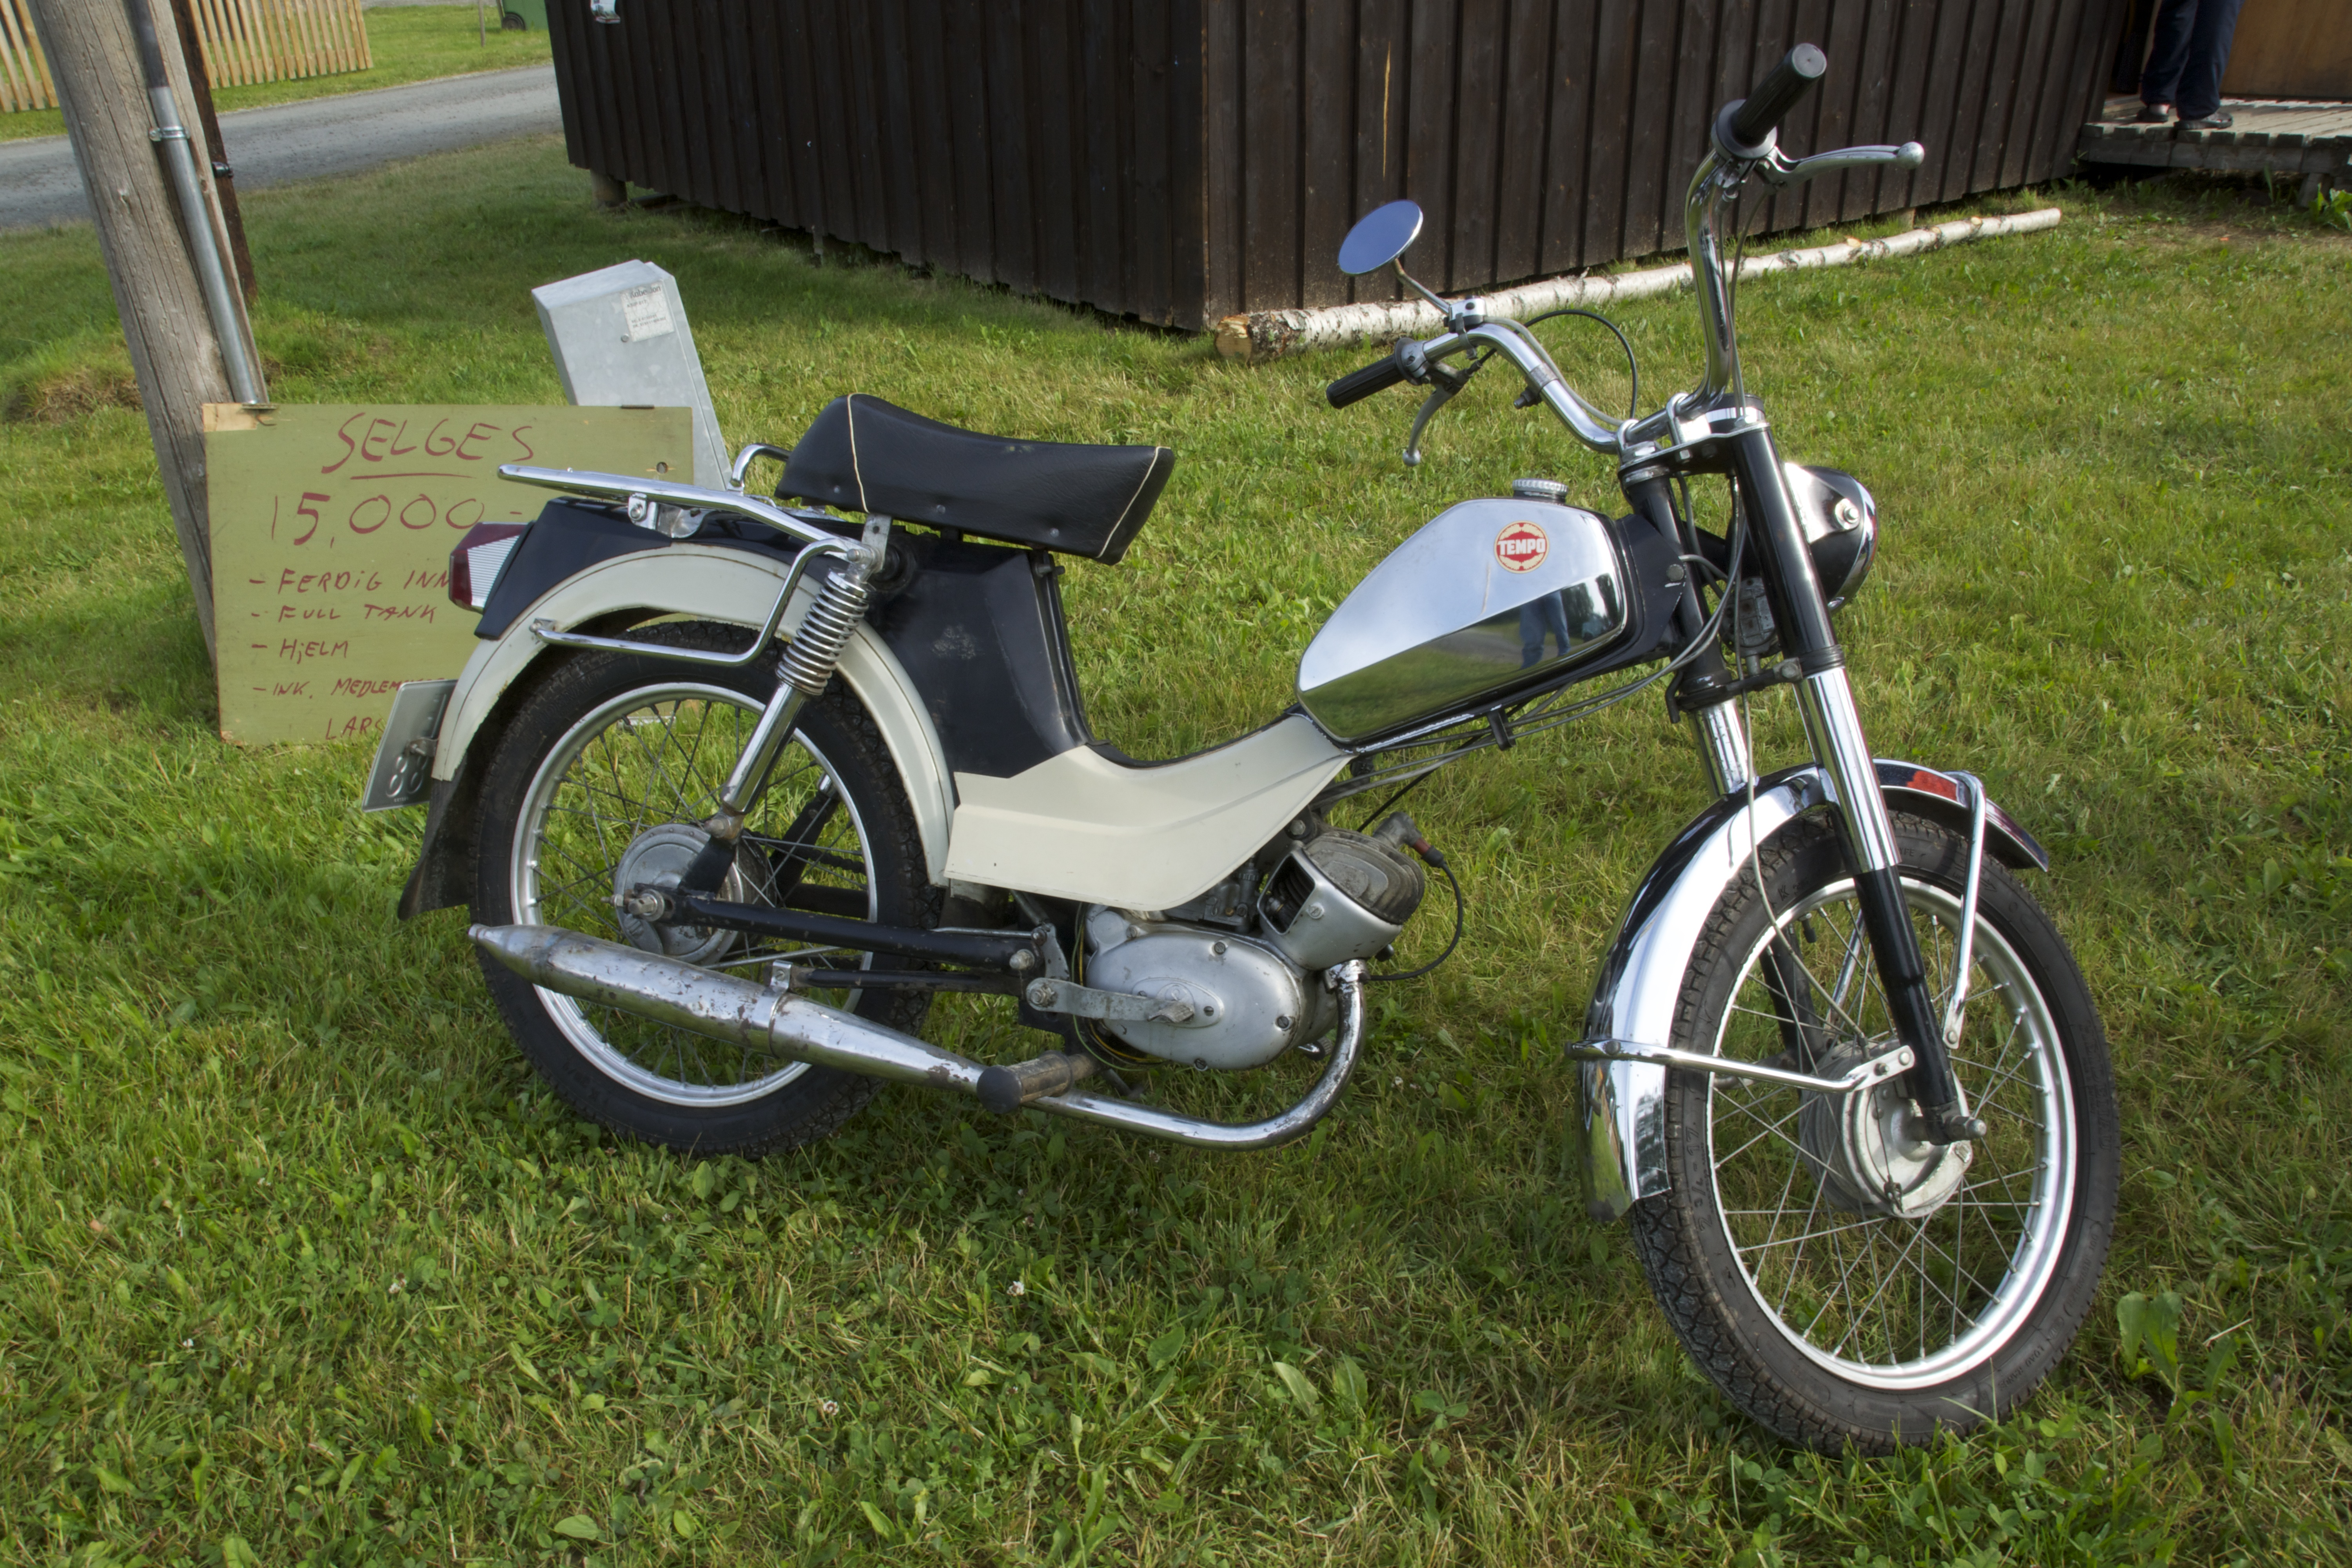 Tempo moped